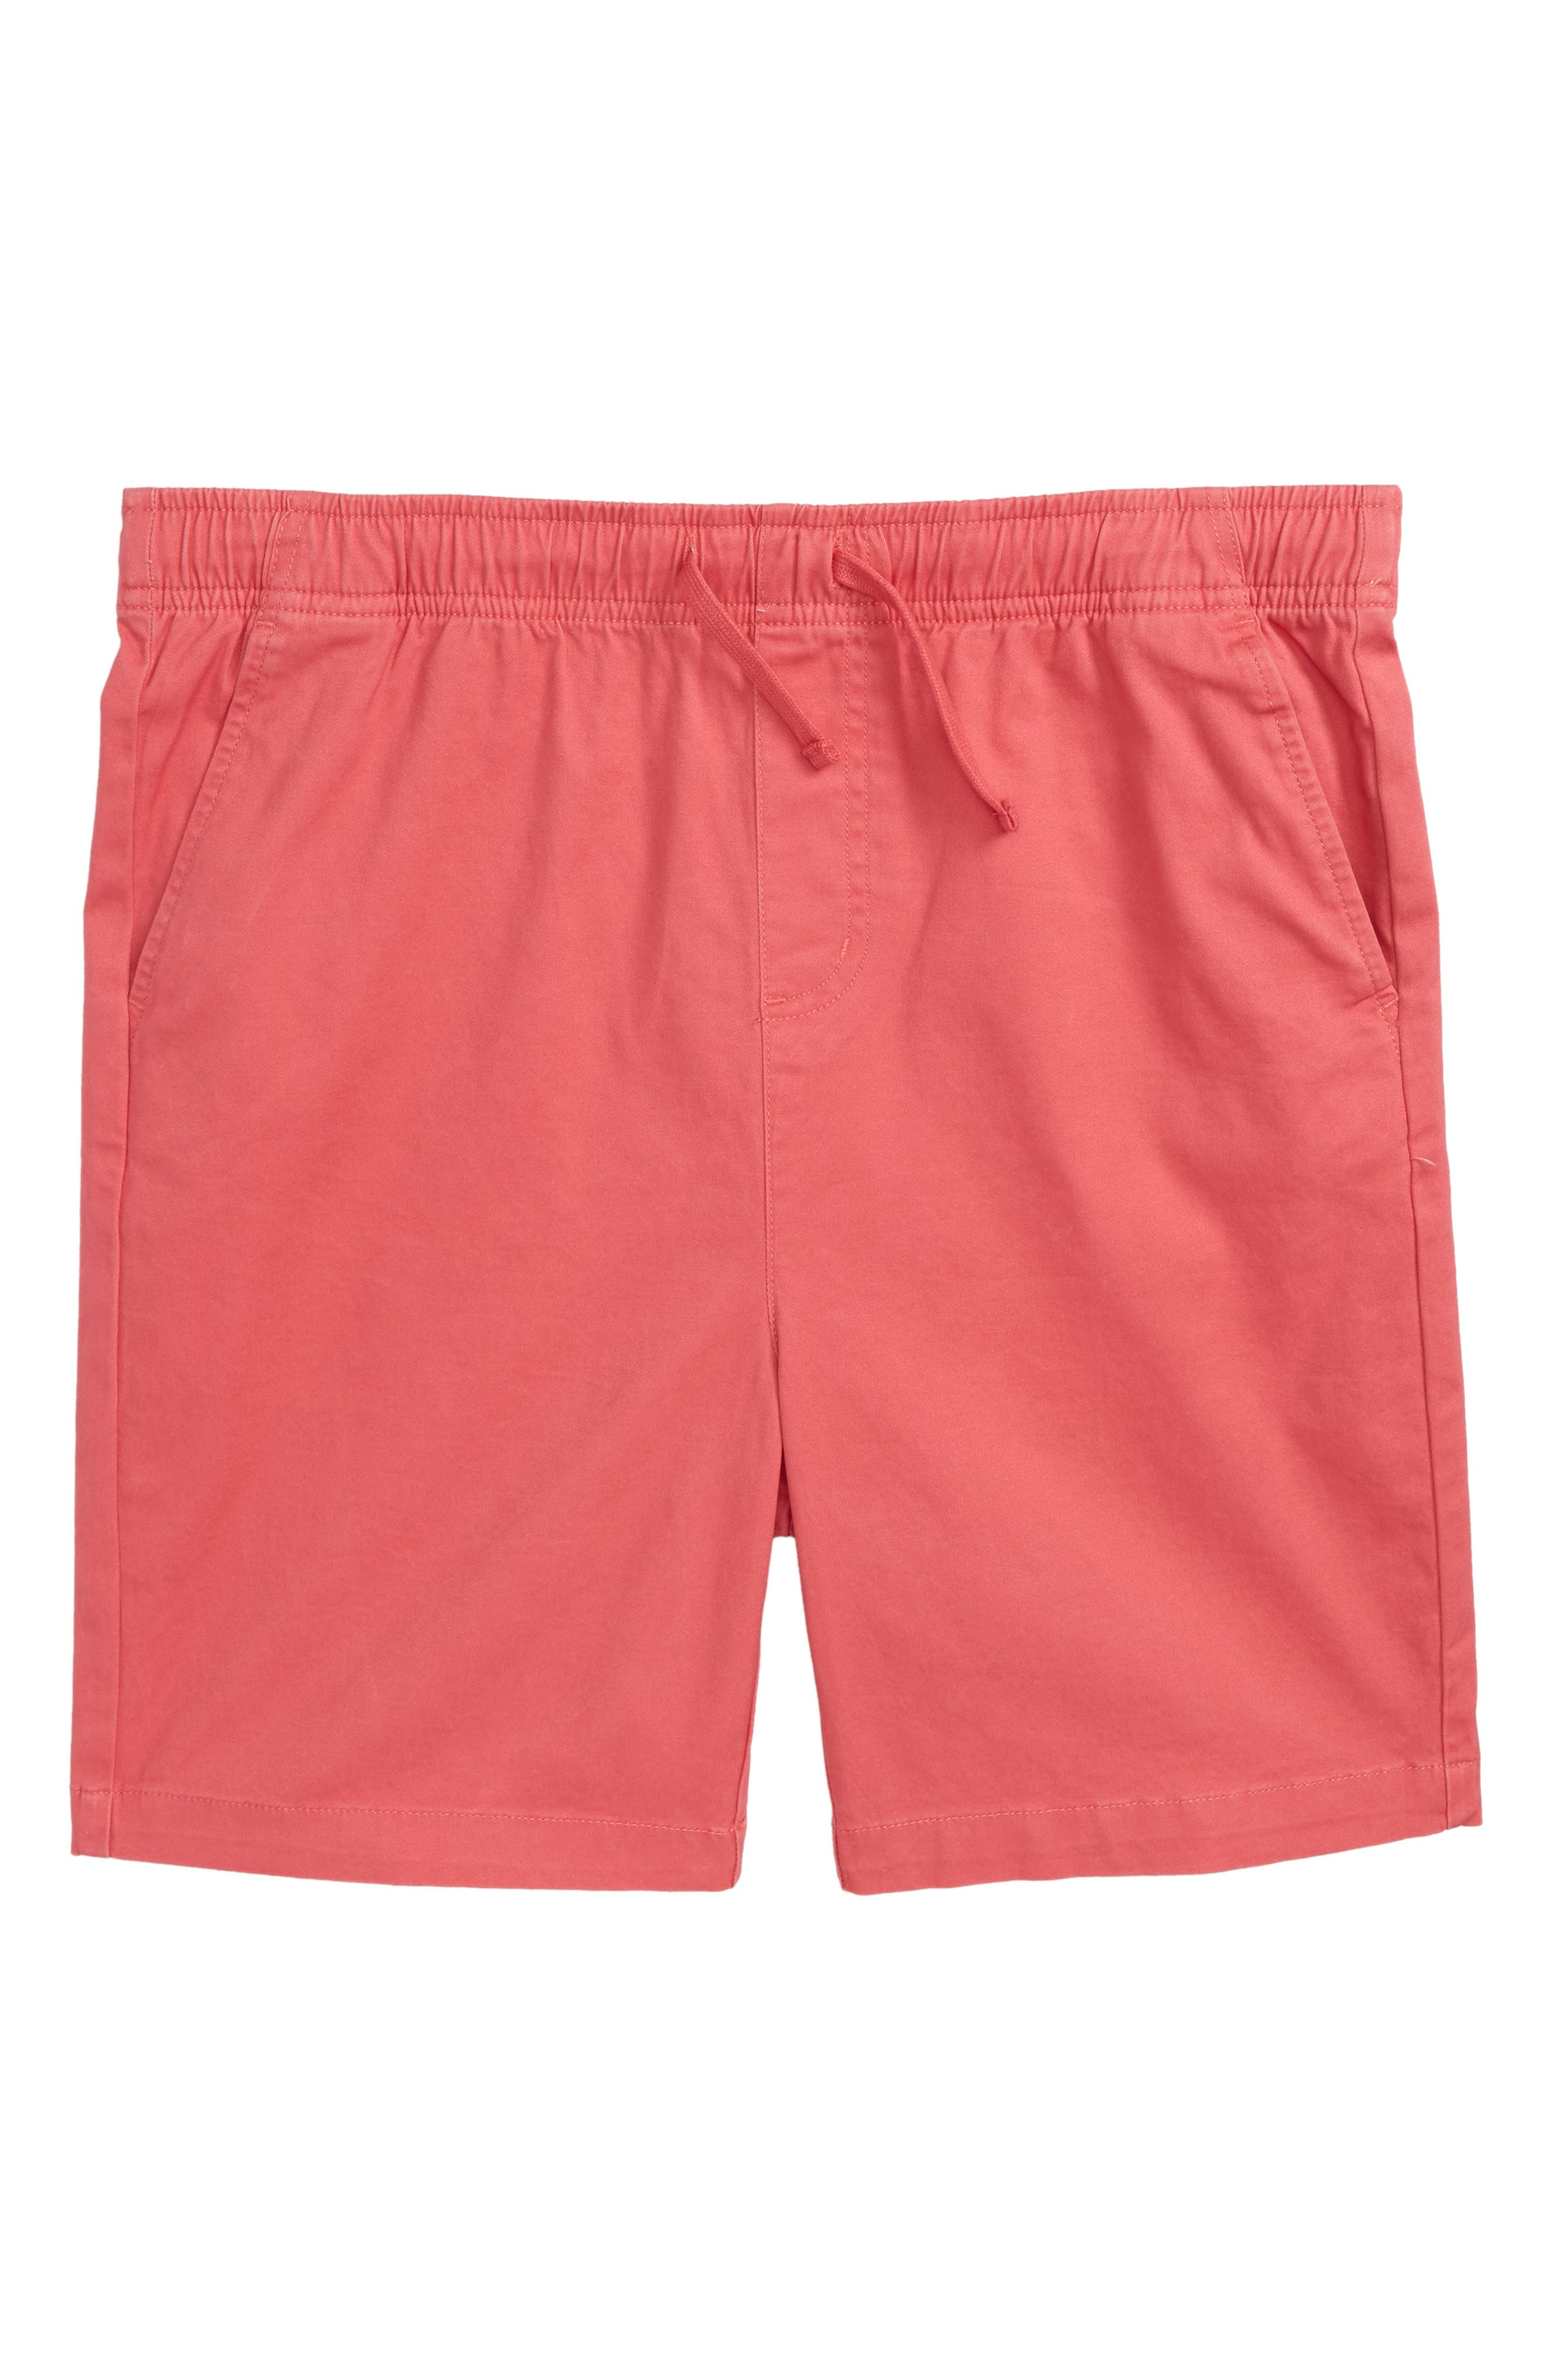 Stretch Jetty Shorts,                             Main thumbnail 1, color,                             Jetty Red